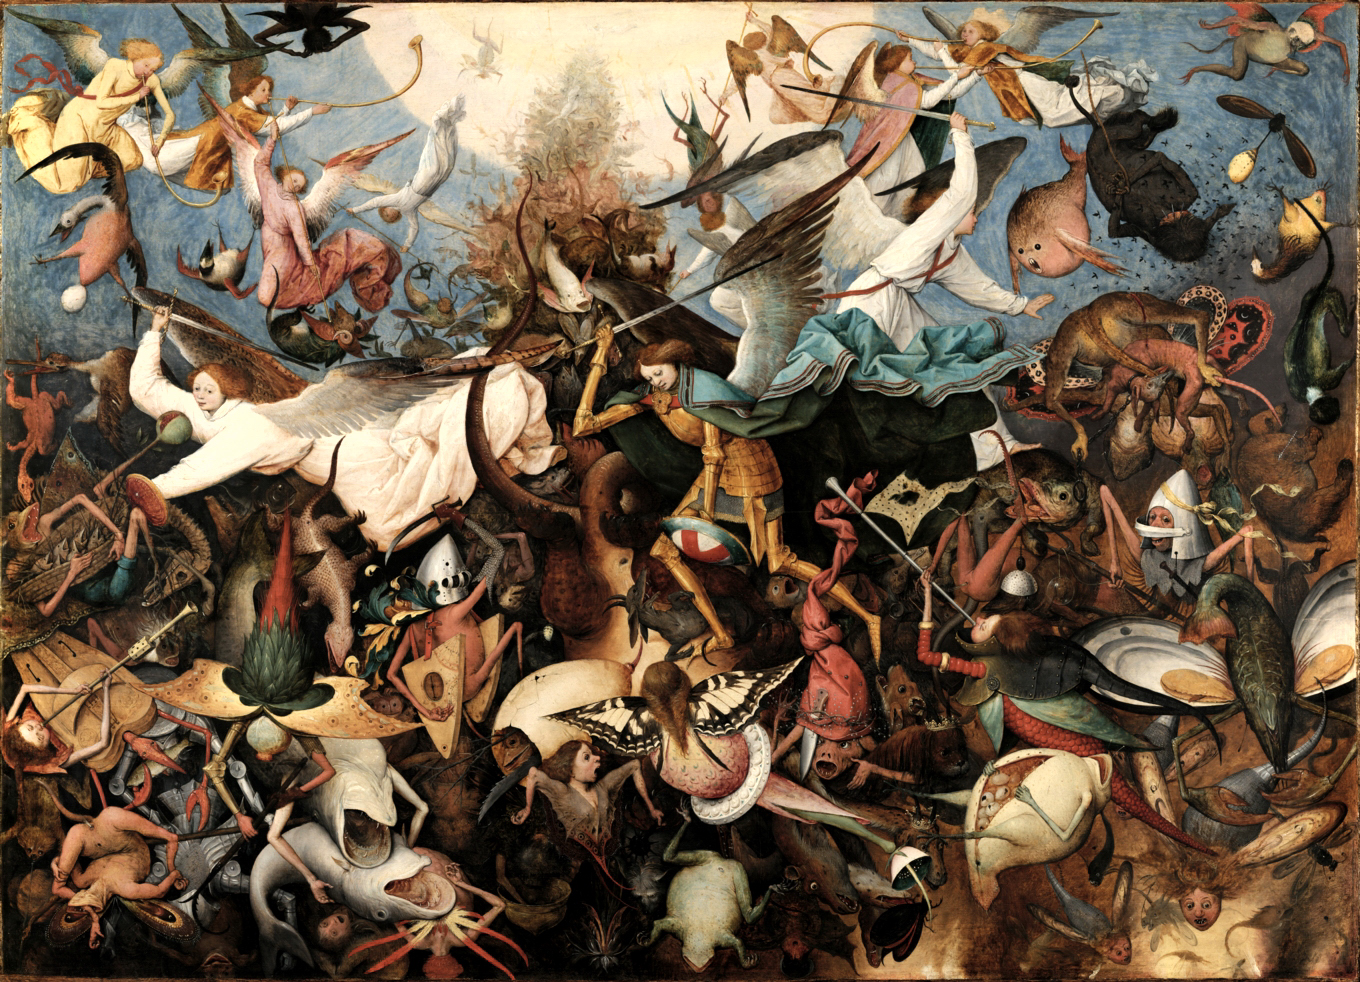 The Fall of the Rebel Angels  By Pieter Brueghel the Elder - www.fine-arts-museum.be : Info, Public Domain, https://commons.wikimedia.org/w/index.php?curid=34089605